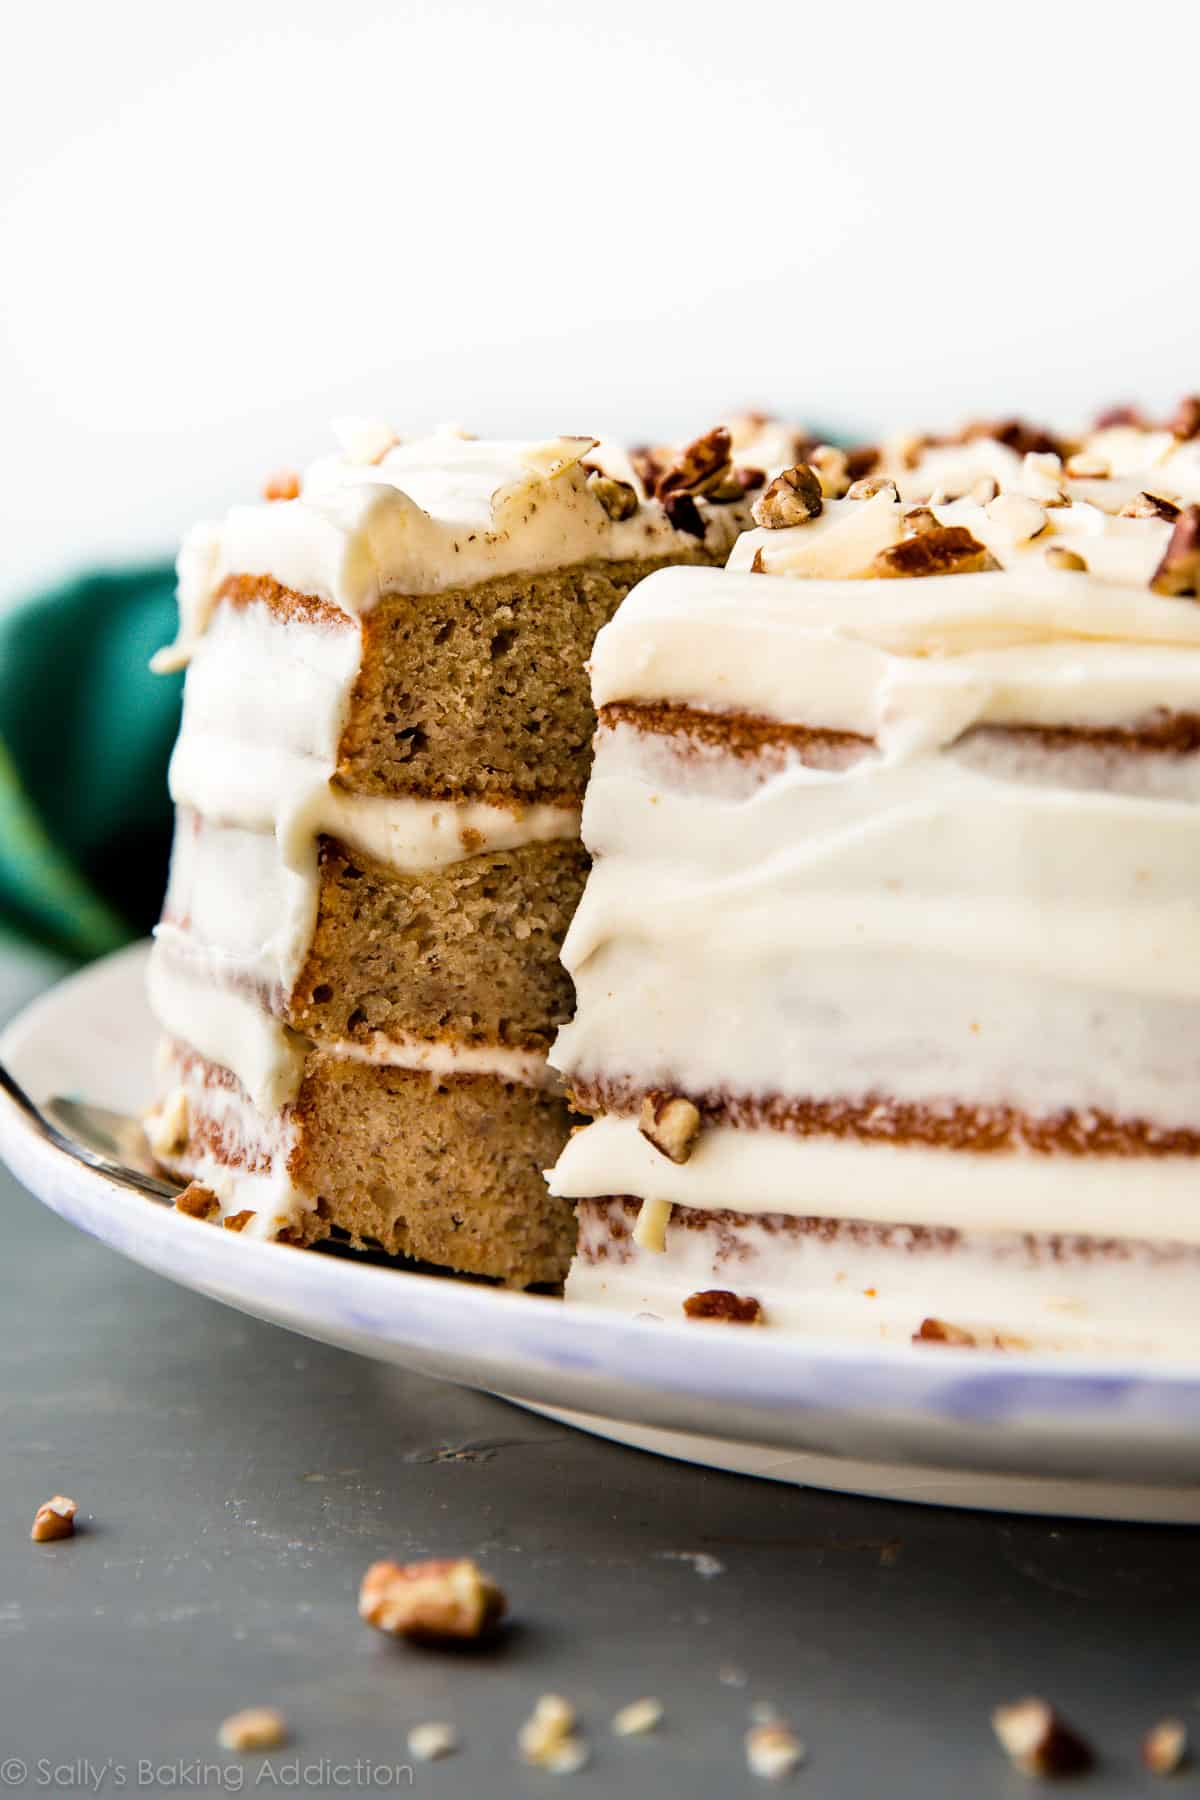 Best banana layer cake recipe with brown butter cream cheese frosting!! So easy to make. Moist, delicious, simple homemade cake! Recipe on sallysbakingaddiction.com